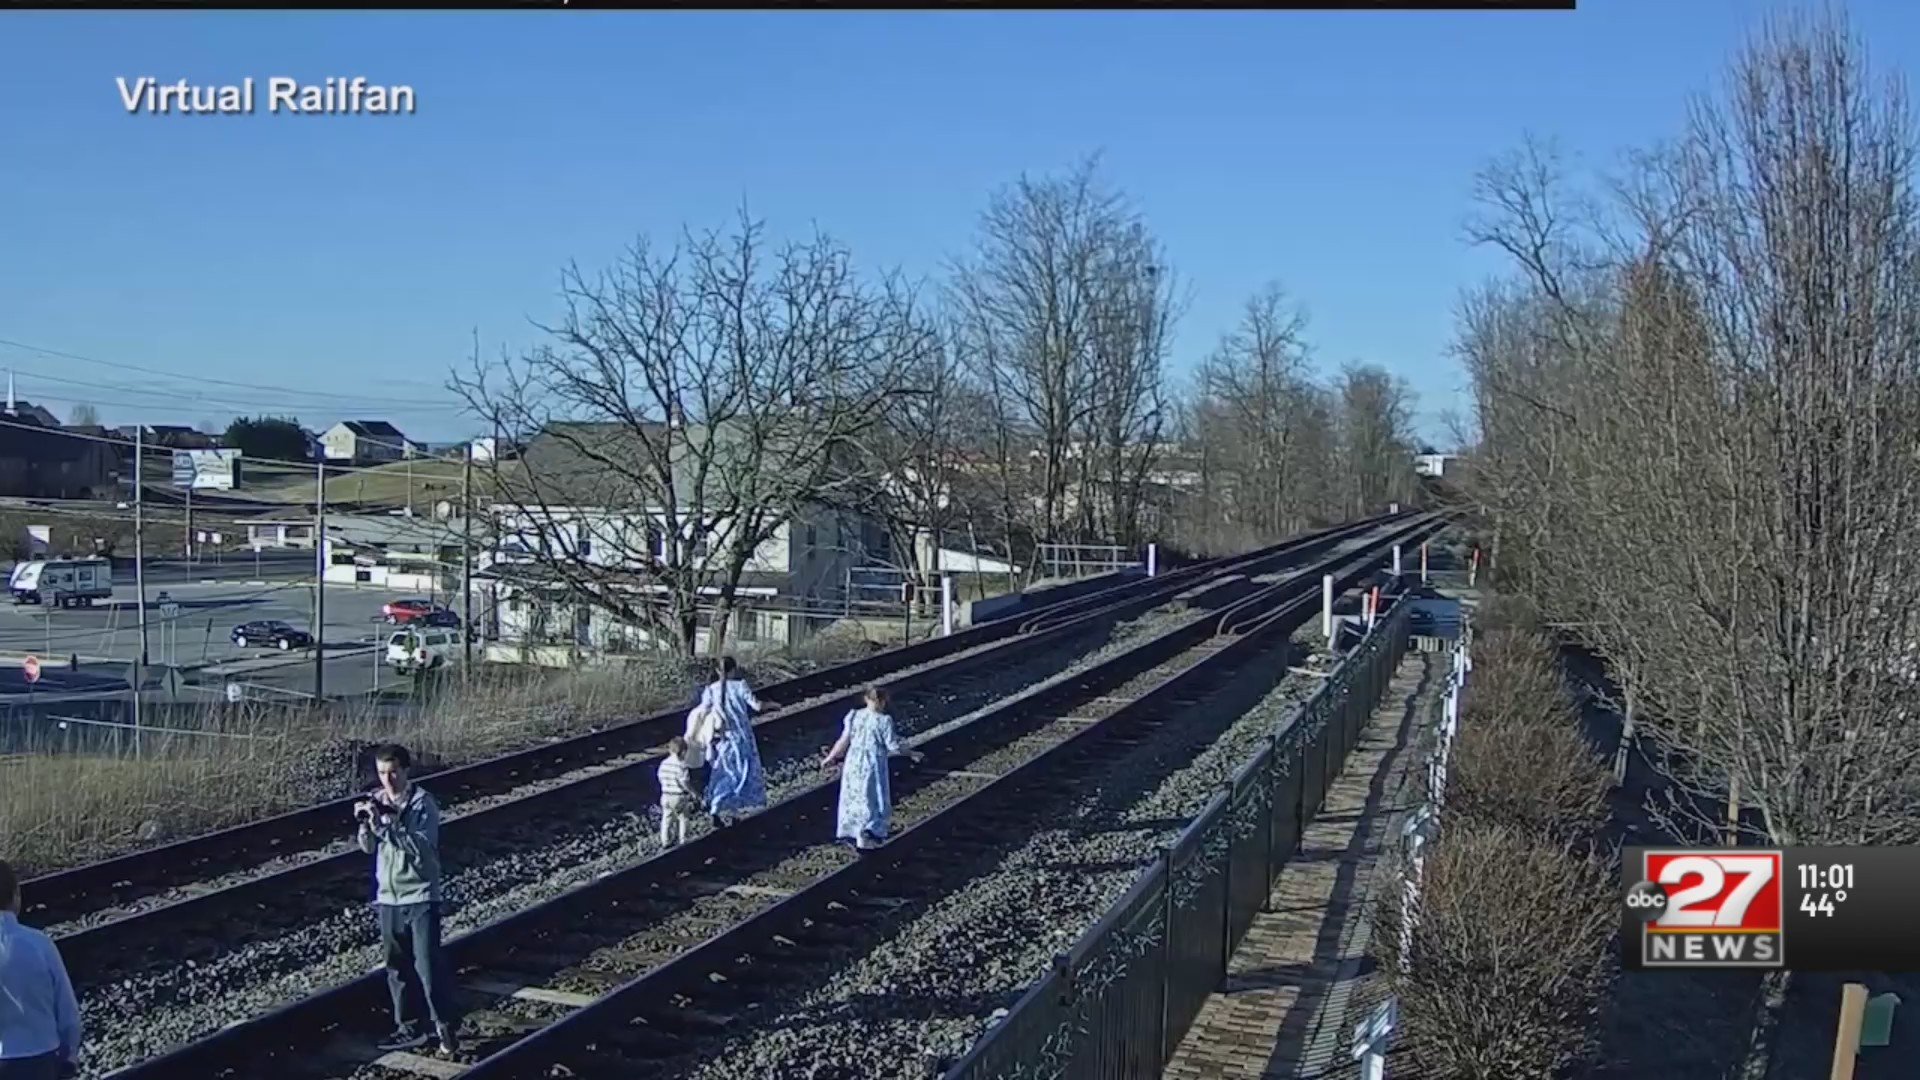 Family walks along tracks seconds before train barrels by